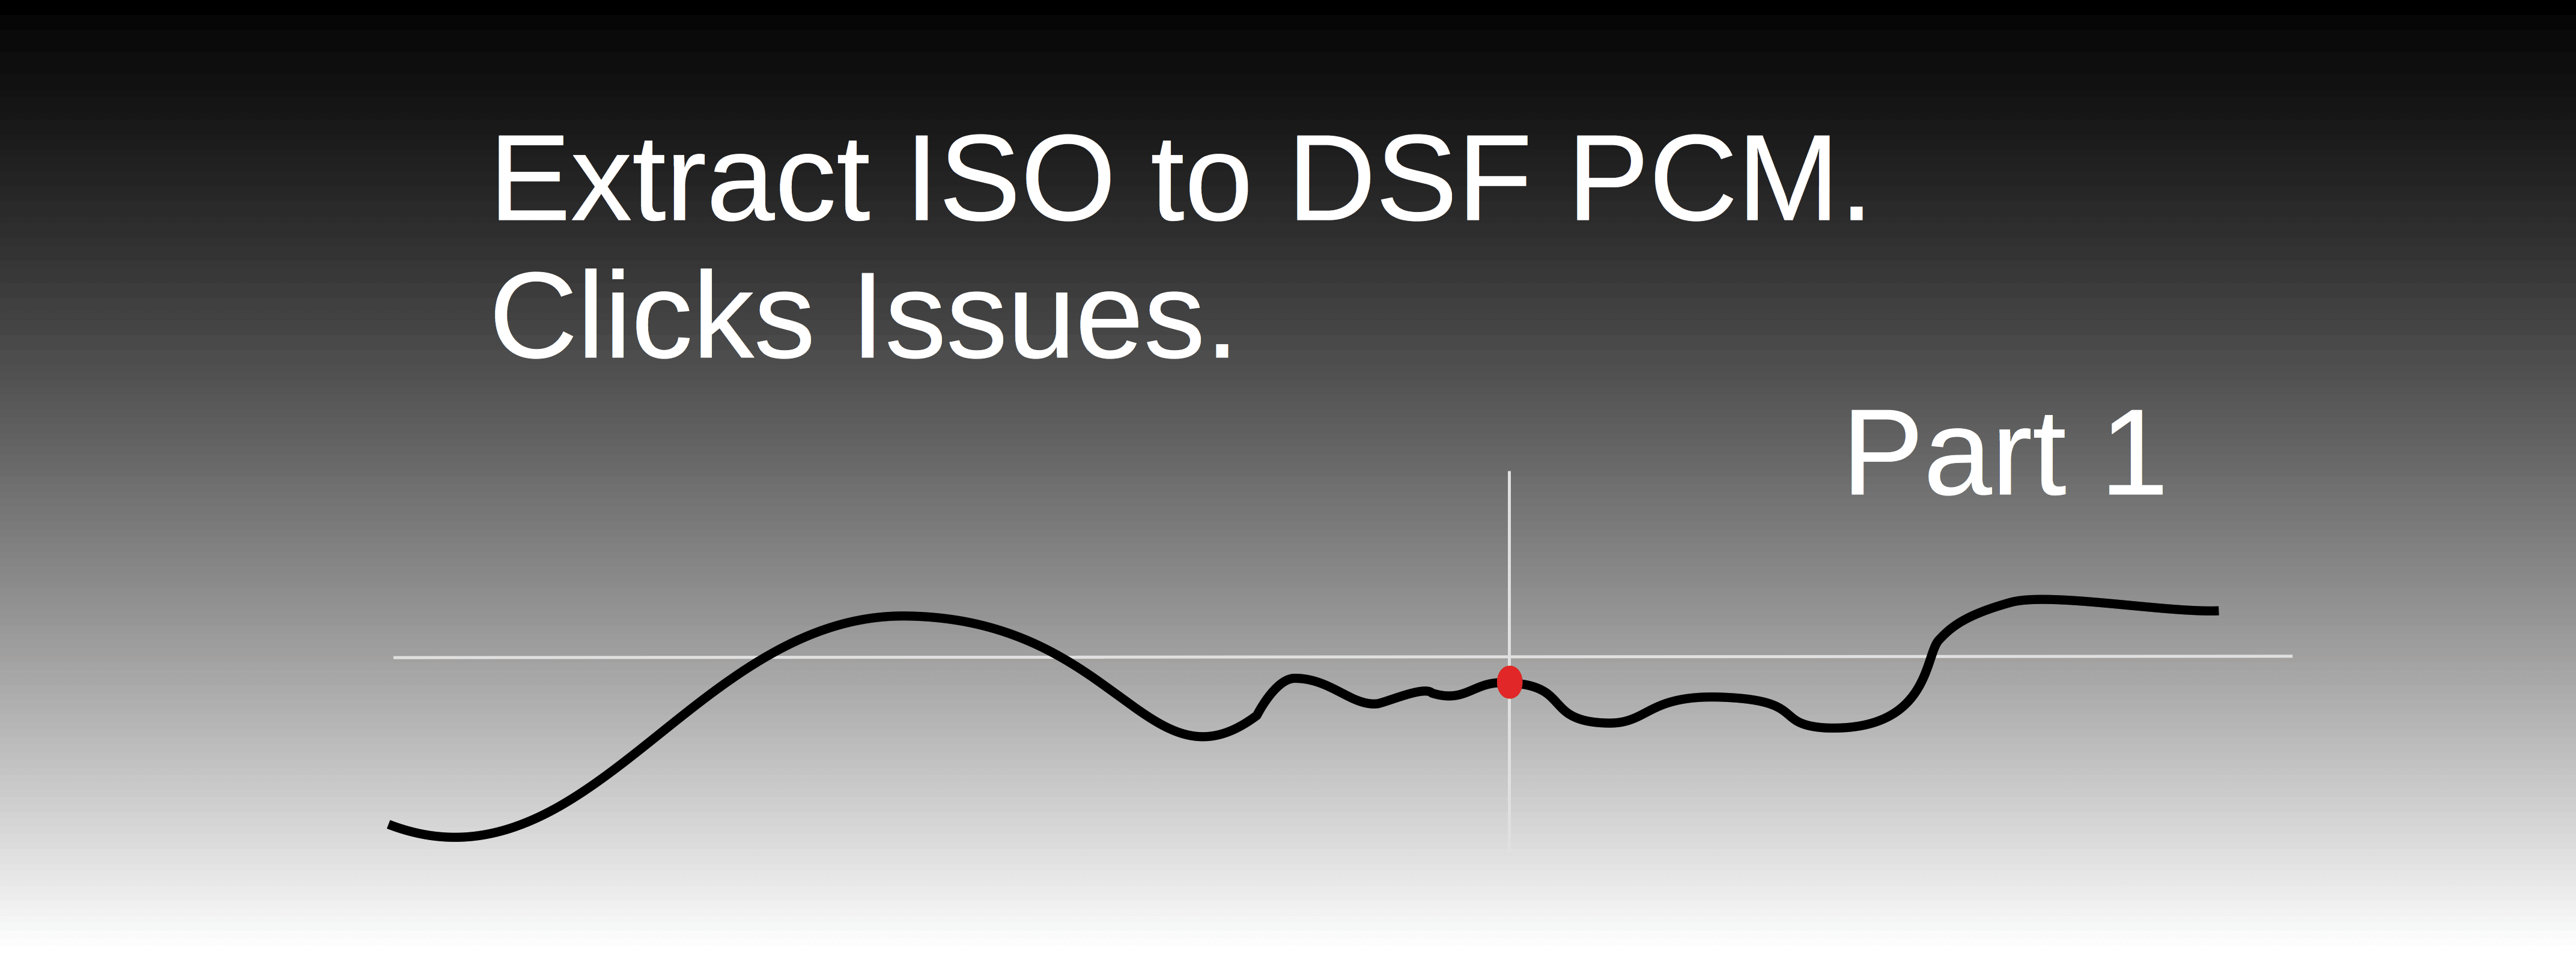 Extract ISO to DSF PCM. Click Issues